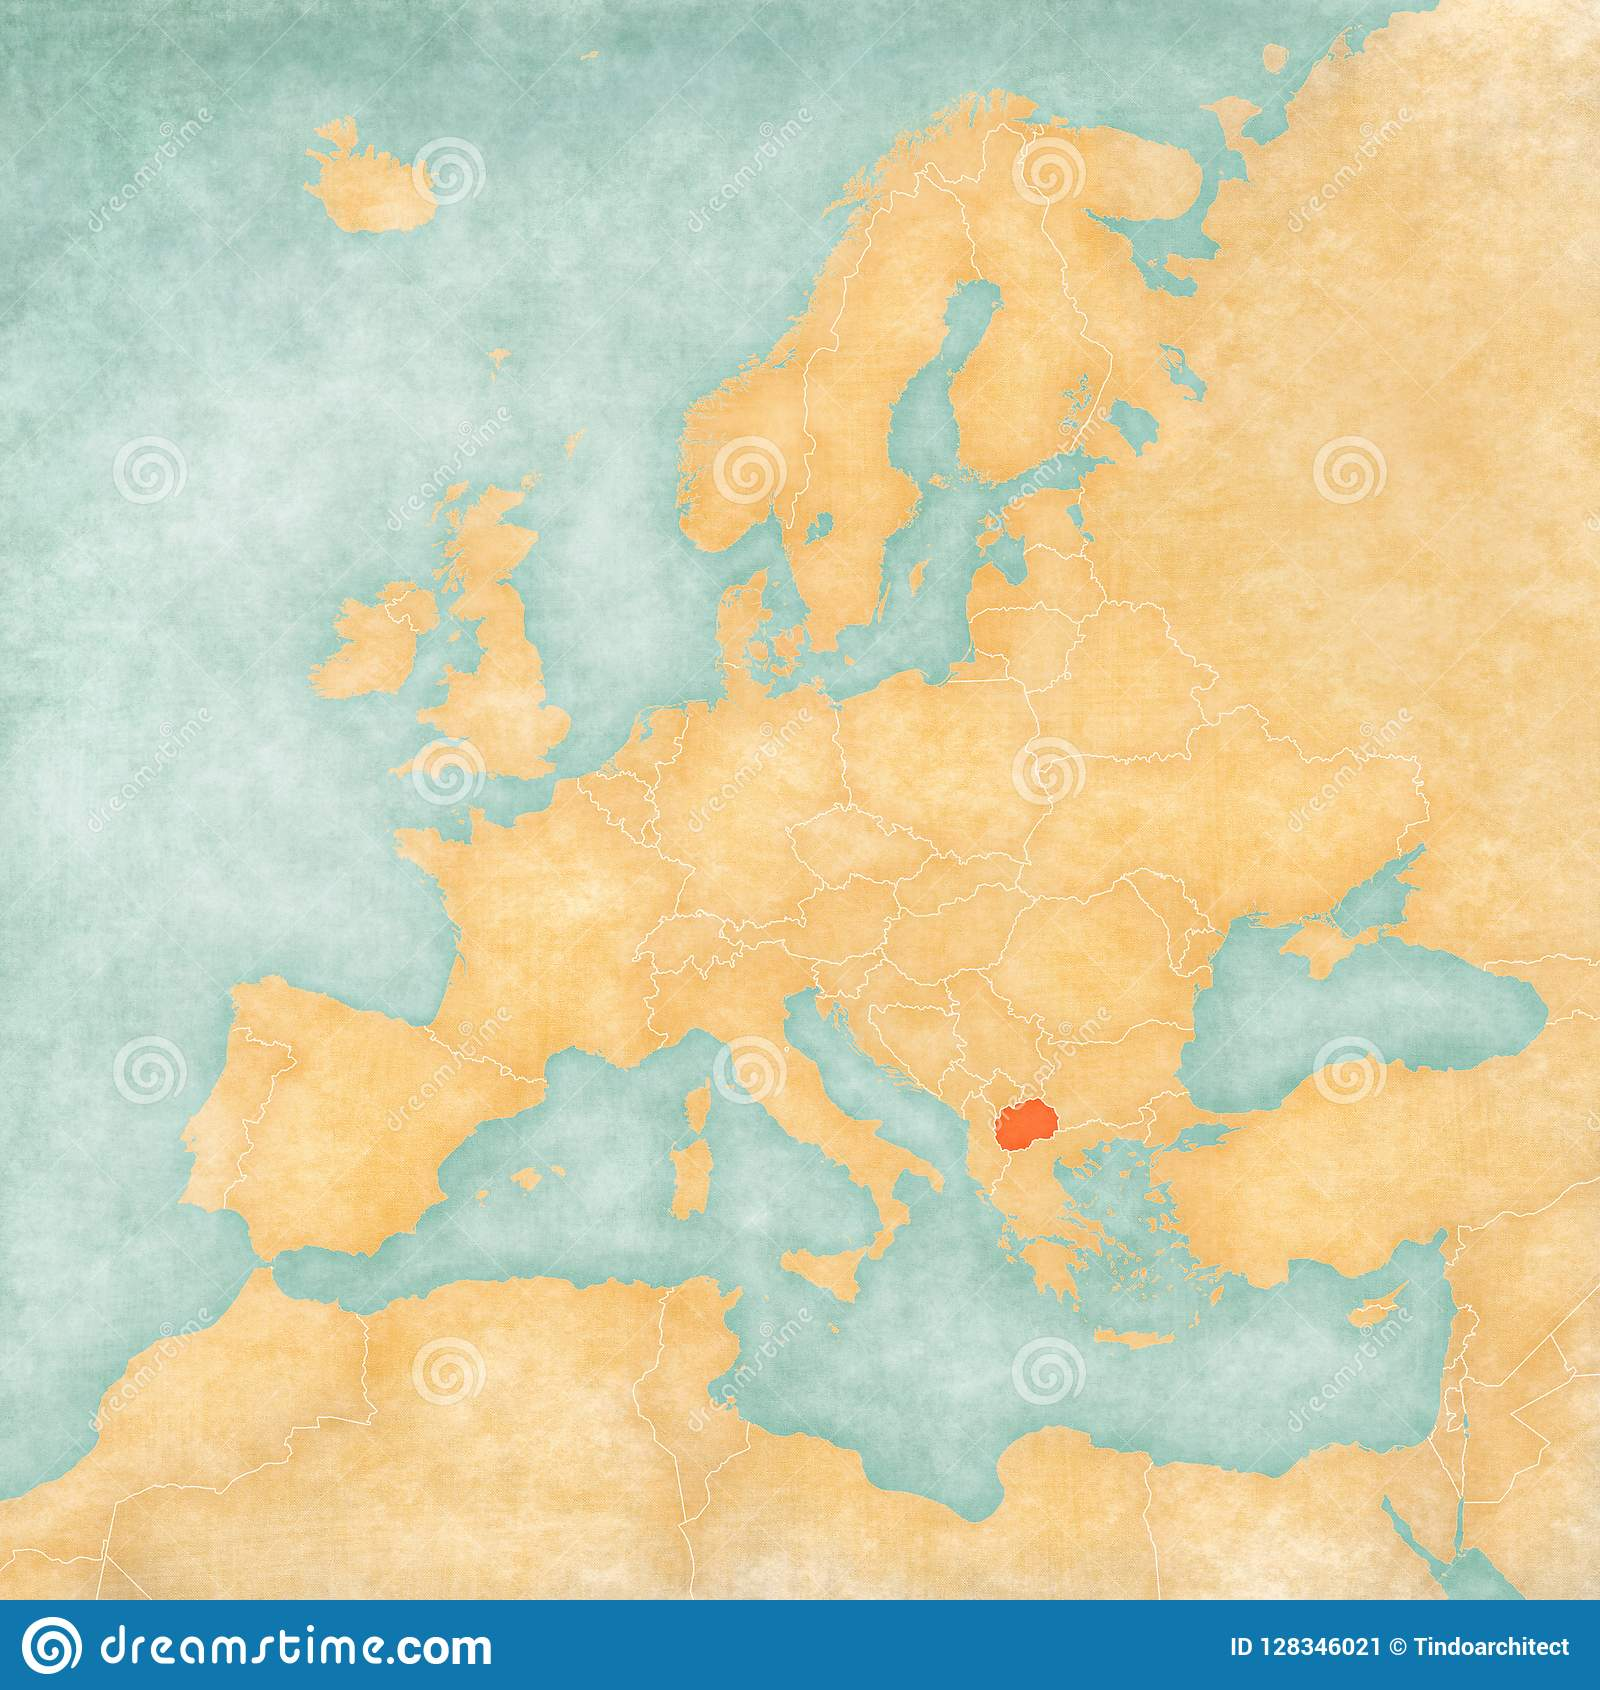 Map of Europe - Macedonia stock illustration. Illustration ... Macedonia On Map on cyprus on map, isreal on map, asia minor on map, jordan on map, athens on map, gaul on map, malta on map, constantinople on map, persian empire on map, belarus on map, san marino on map, greece on map, carthage on map, romania on map, peloponnese on map, albania on map, crete on map, moldova on map, armenia on map, aegean sea on map,